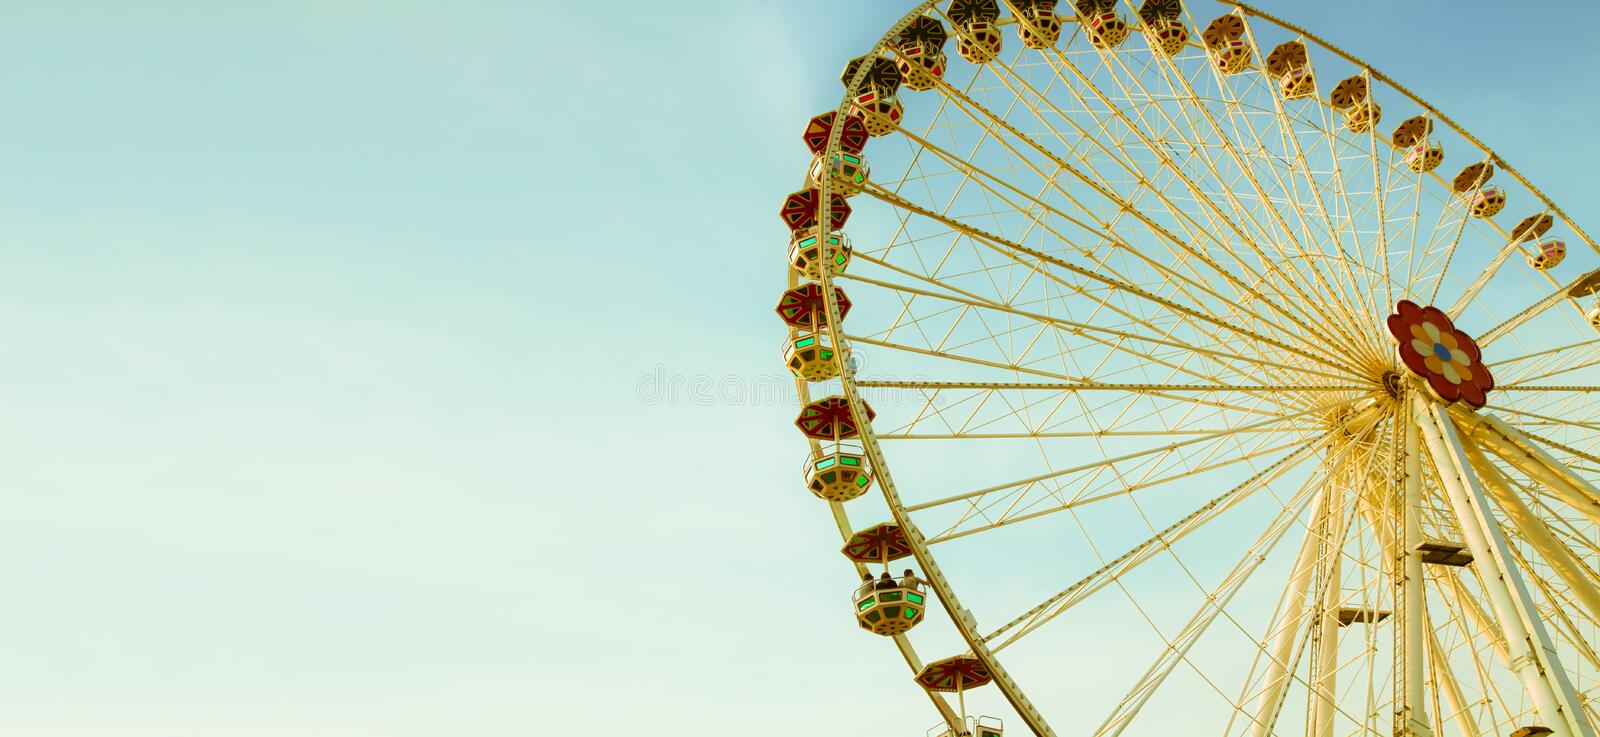 Ferris wheel or wonder wheel in an amusement park on a sunny summer day with blue sky and almost no clouds. royalty free stock photography